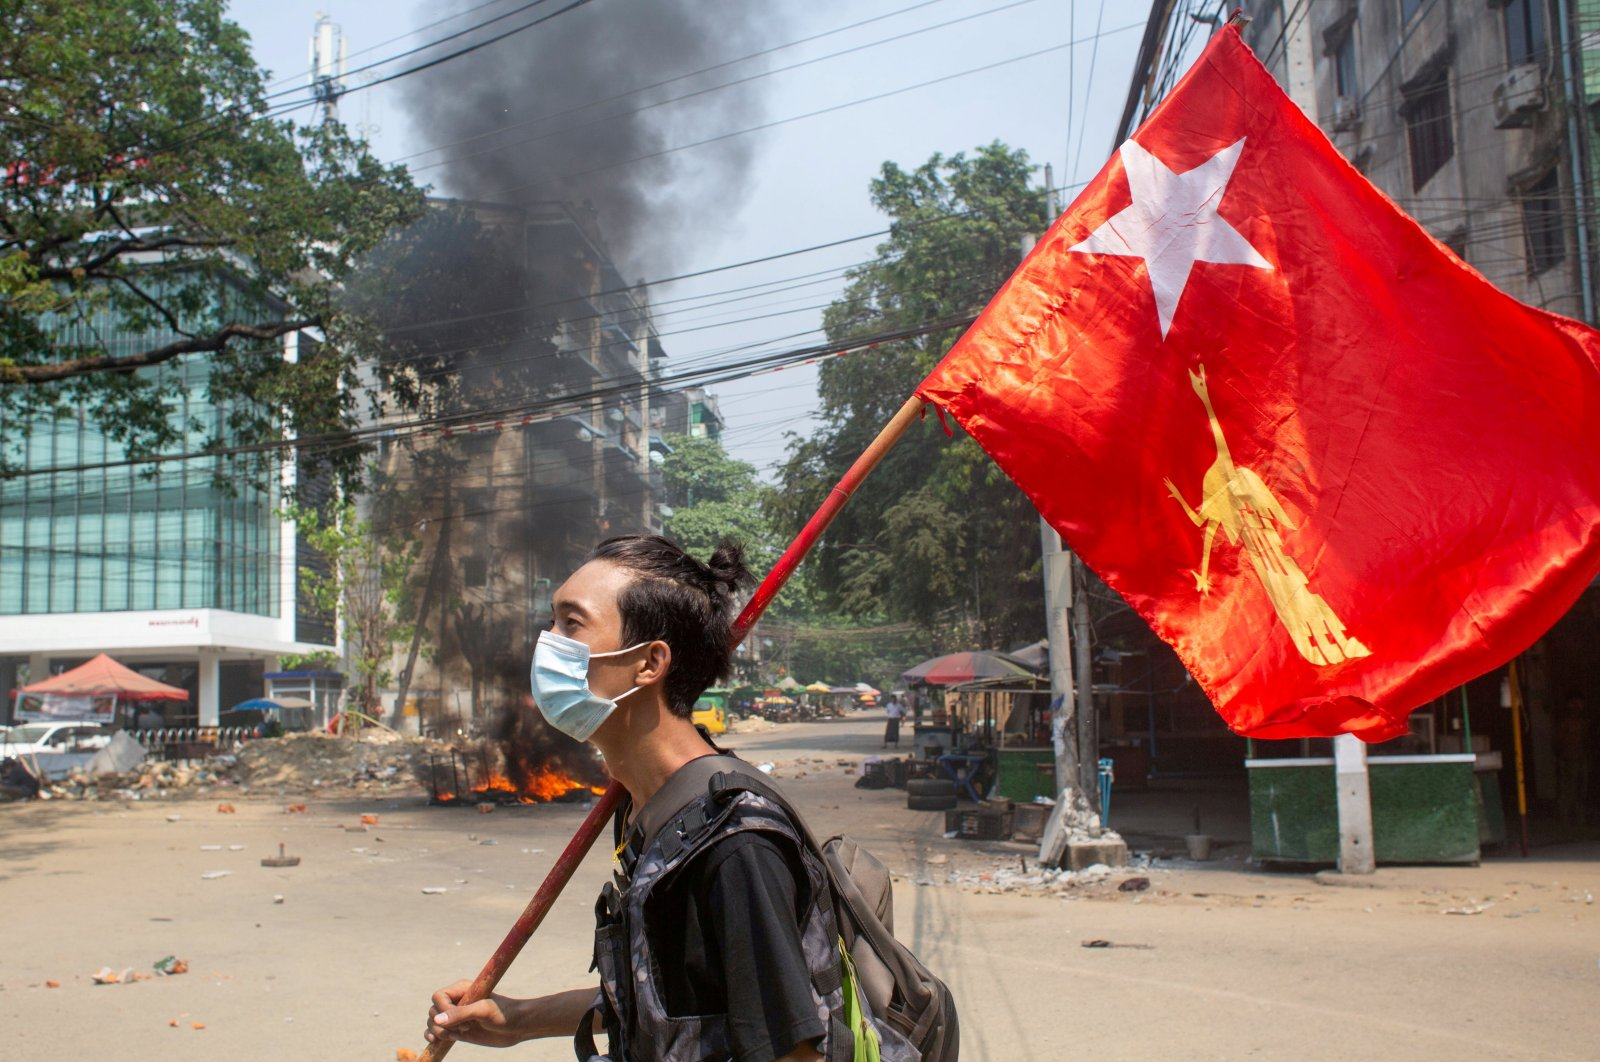 A man holds a National League for Democracy (NLD) flag during a protest against the military coup, in Yangon, Myanmar, March 27, 2021. (Reuters Photo)